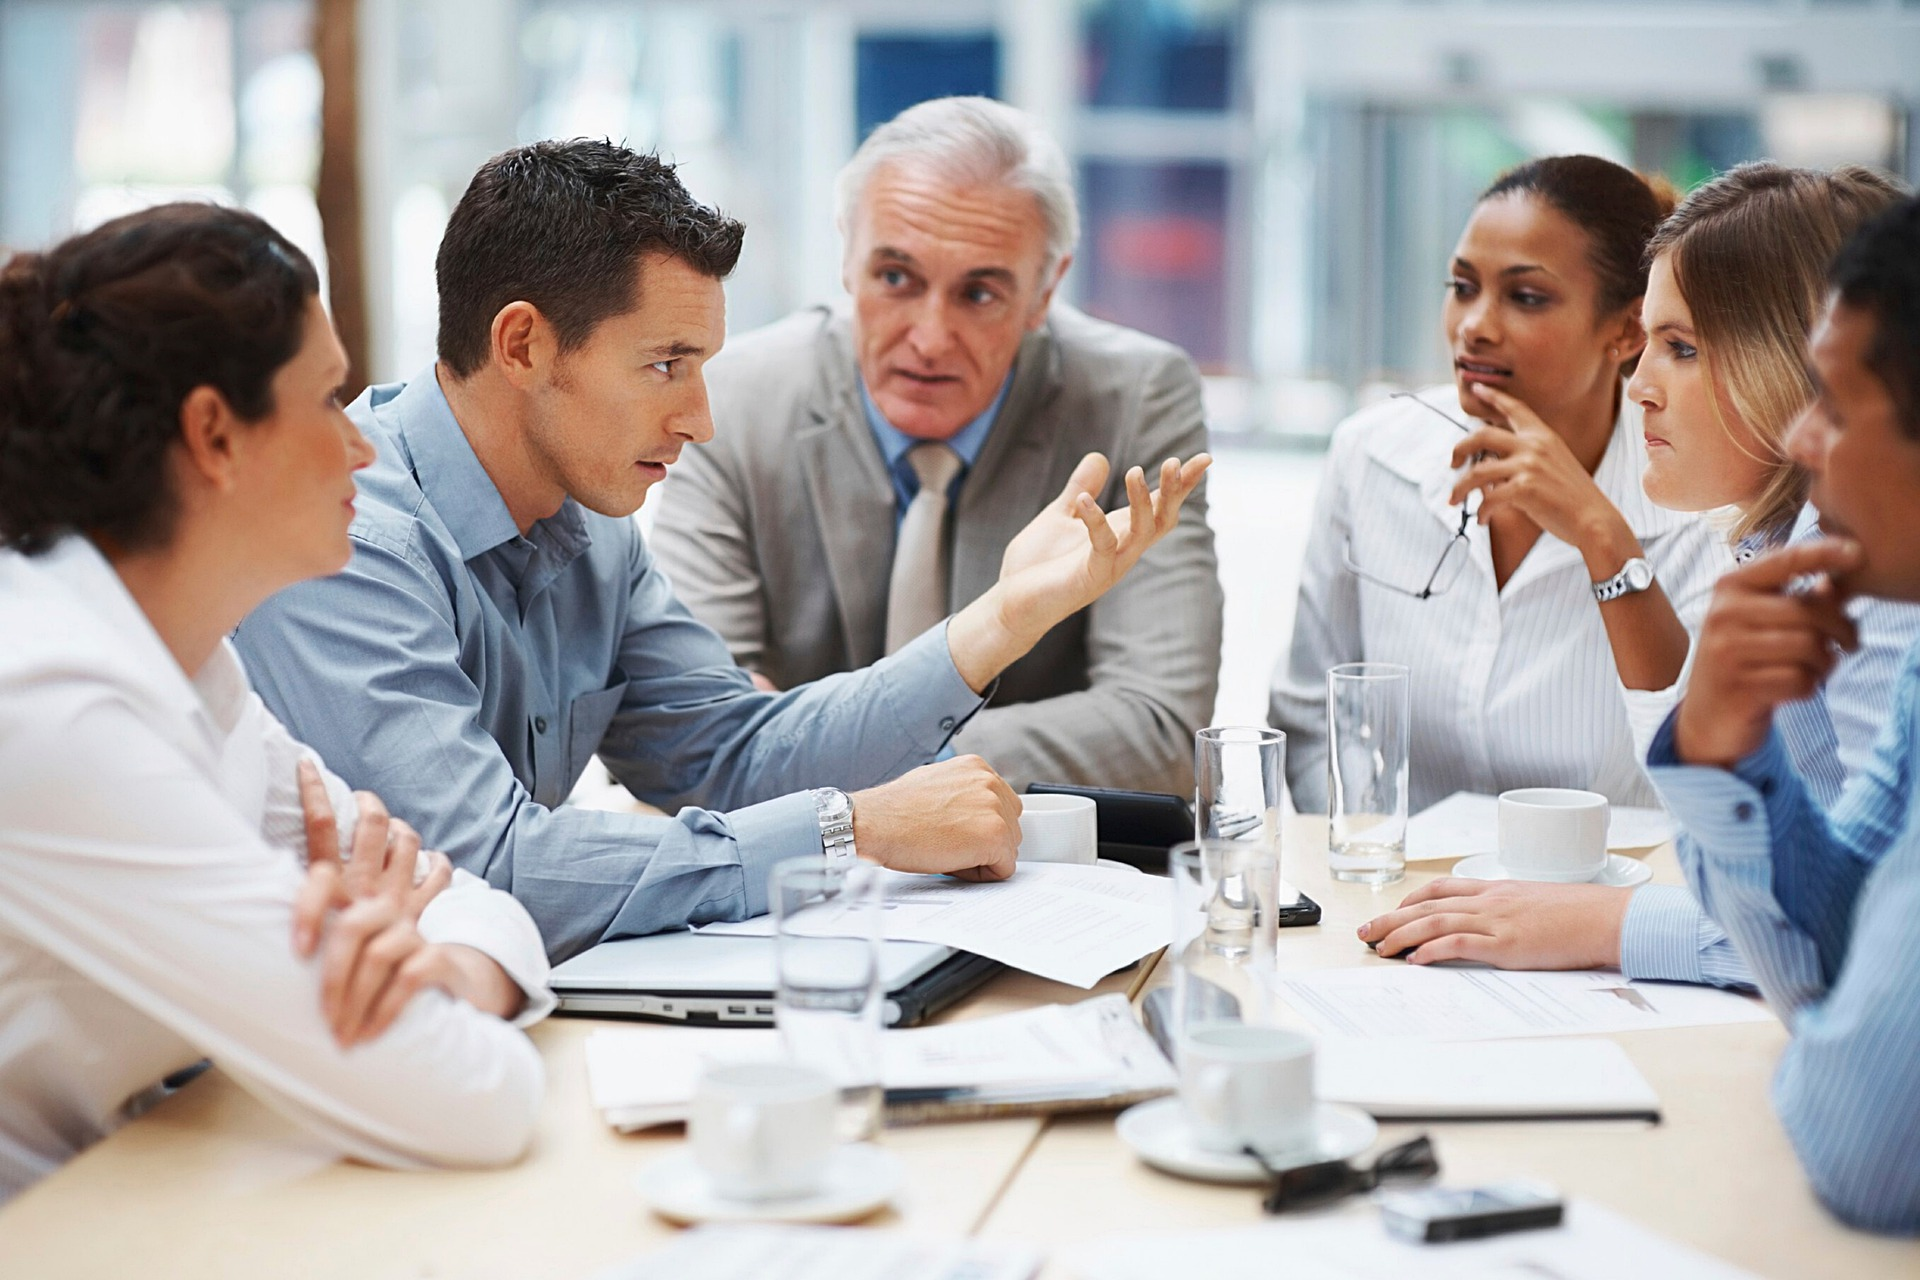 The Four DISC Styles of Leadership Communication